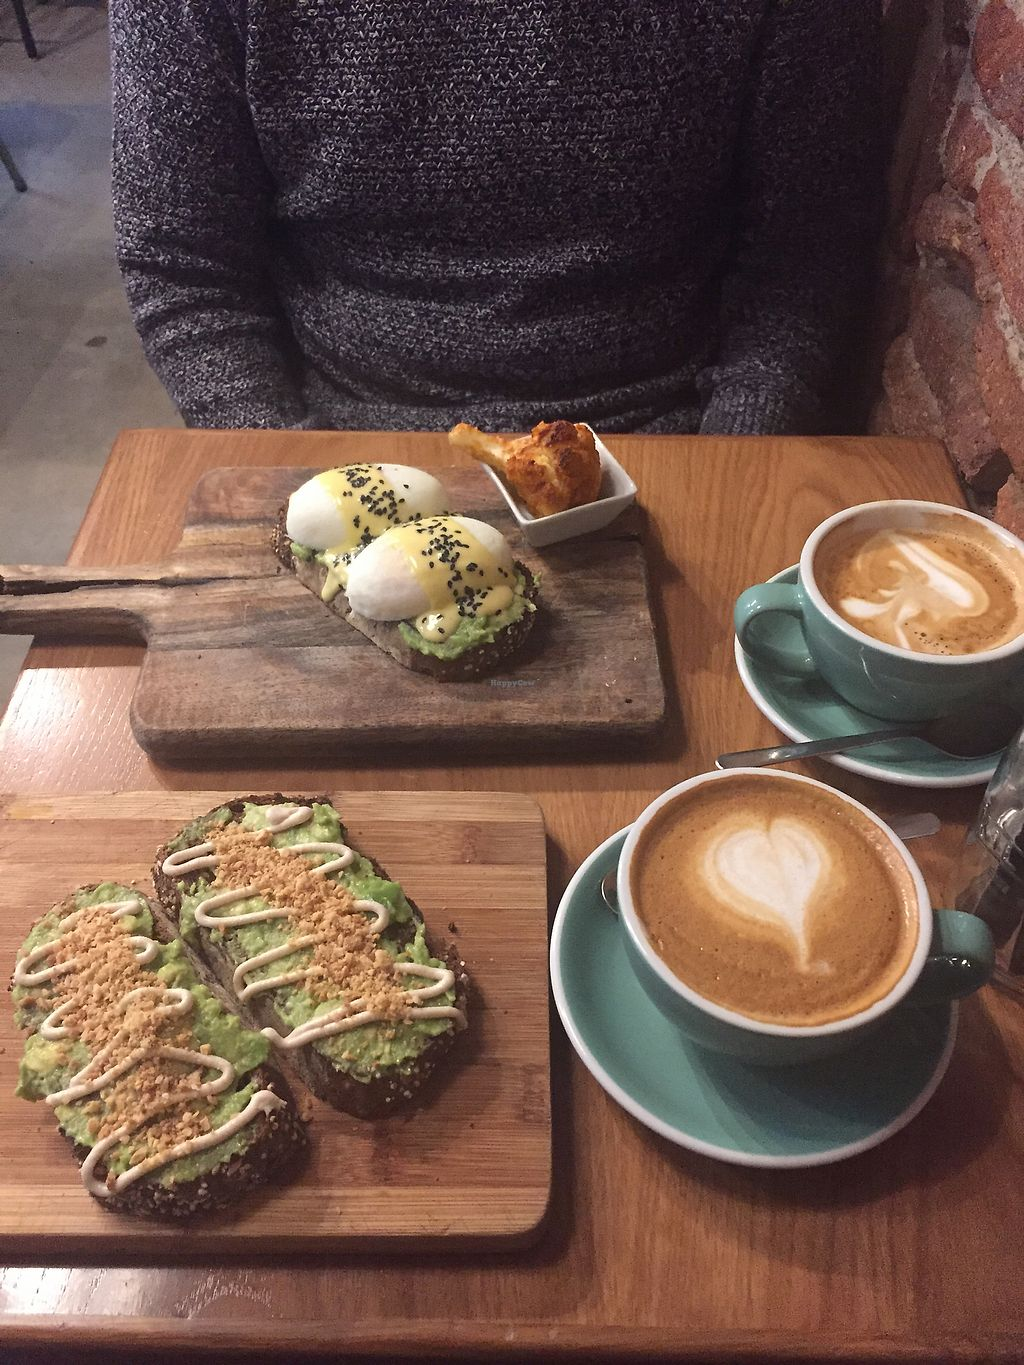 """Photo of Pum Pum Cafe  by <a href=""""/members/profile/TainahHeinrich"""">TainahHeinrich</a> <br/>Pum pum benedict and avocado toast with lattes  <br/> December 28, 2017  - <a href='/contact/abuse/image/73911/339986'>Report</a>"""